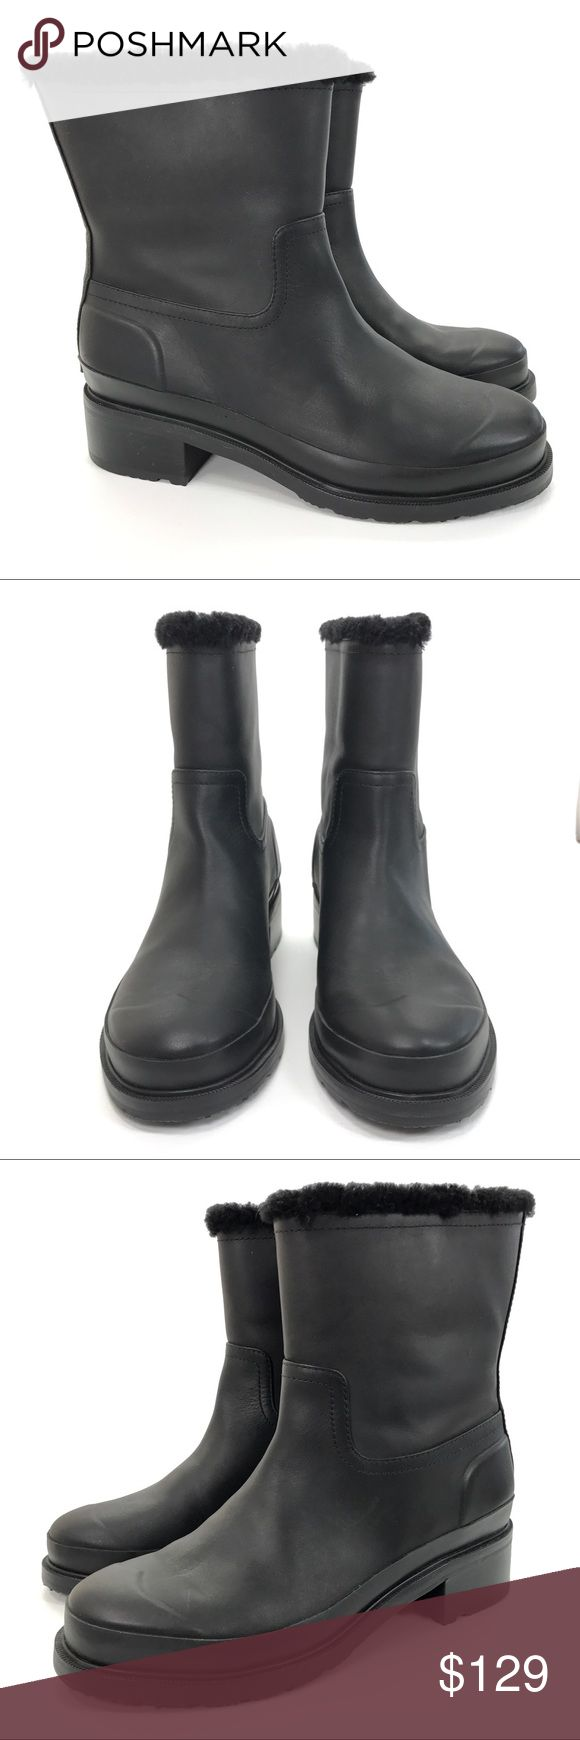 Hunter Original Shearling Lined Leather Pull On Short Mid-calf Winter Rain Snow Boots  Color: Matt Black Condition: New without box or tags. Tried on but never worn. May be some very light/minimal signs of try on and or storage. Hunter Boots Shoes Winter & Rain Boots